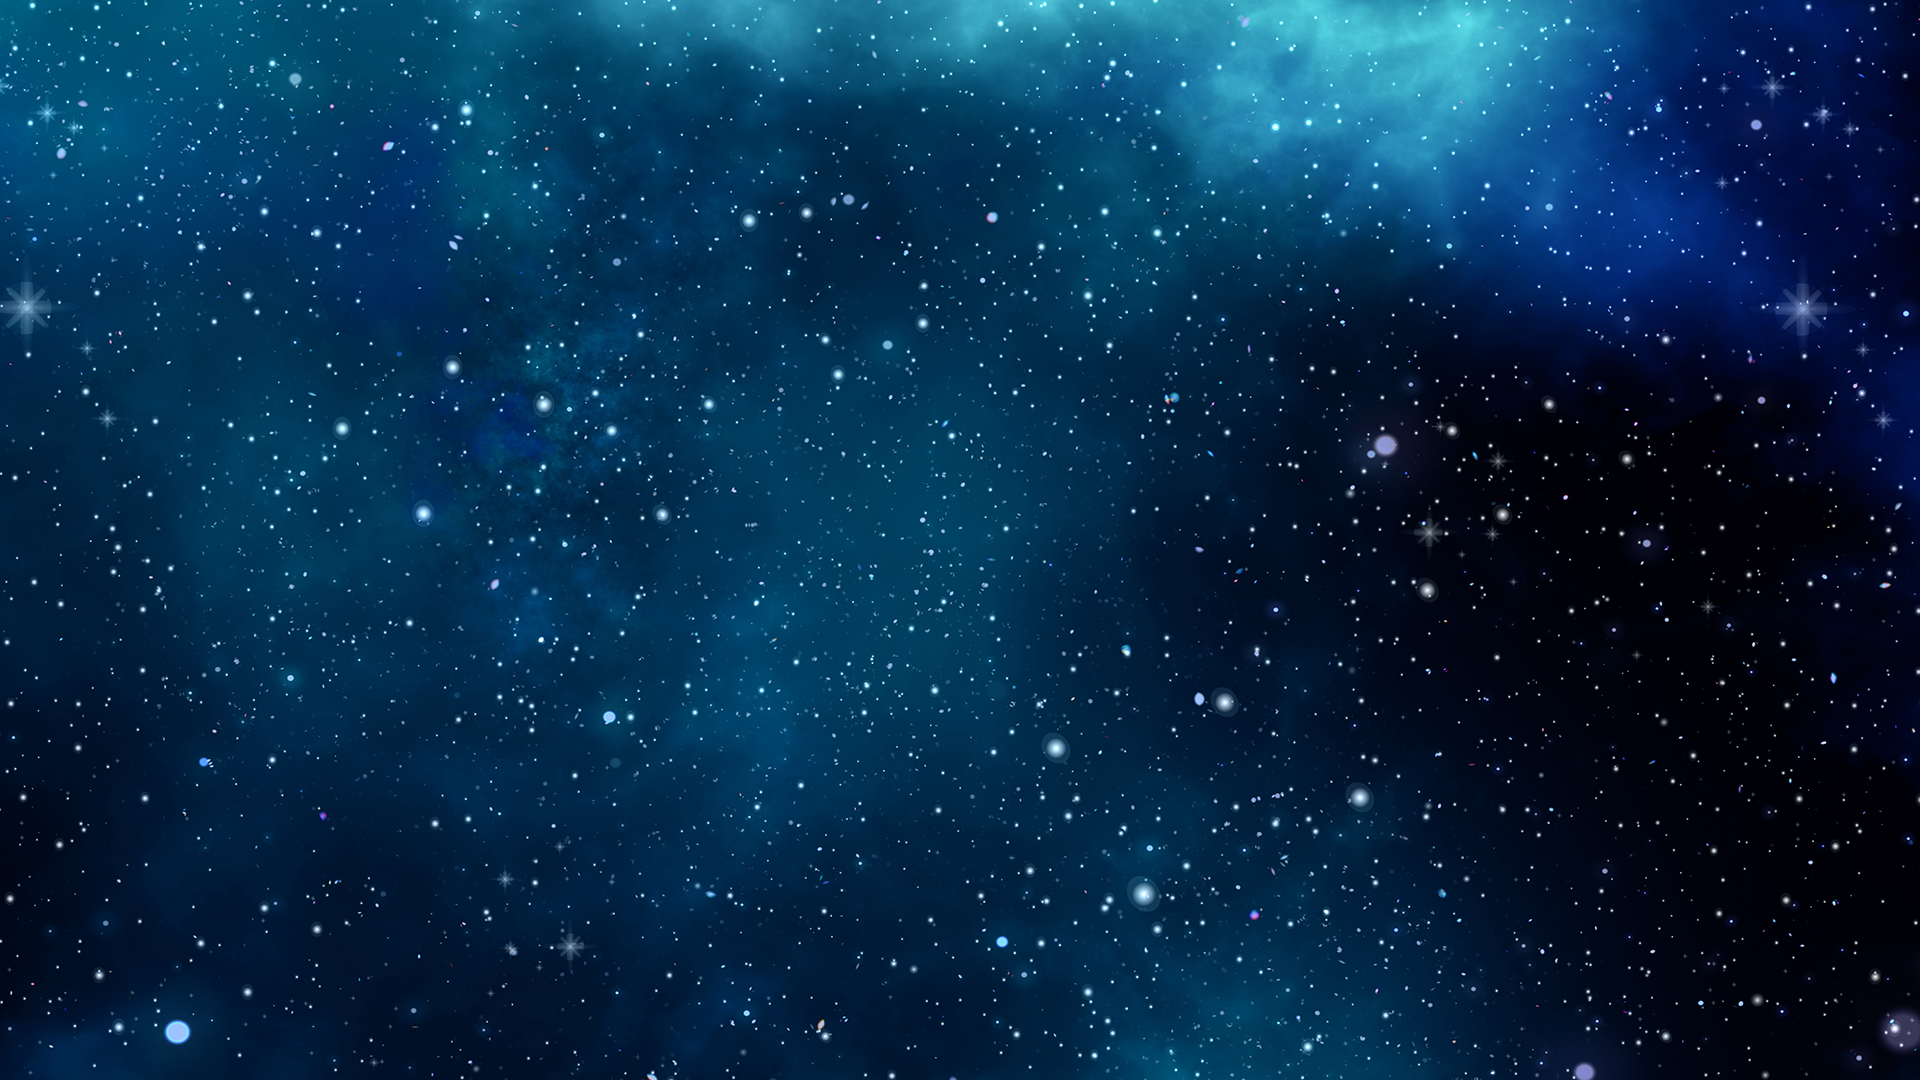 Download This Free Blue Space Tablet Wallpaper In Hd Or 4k 0065